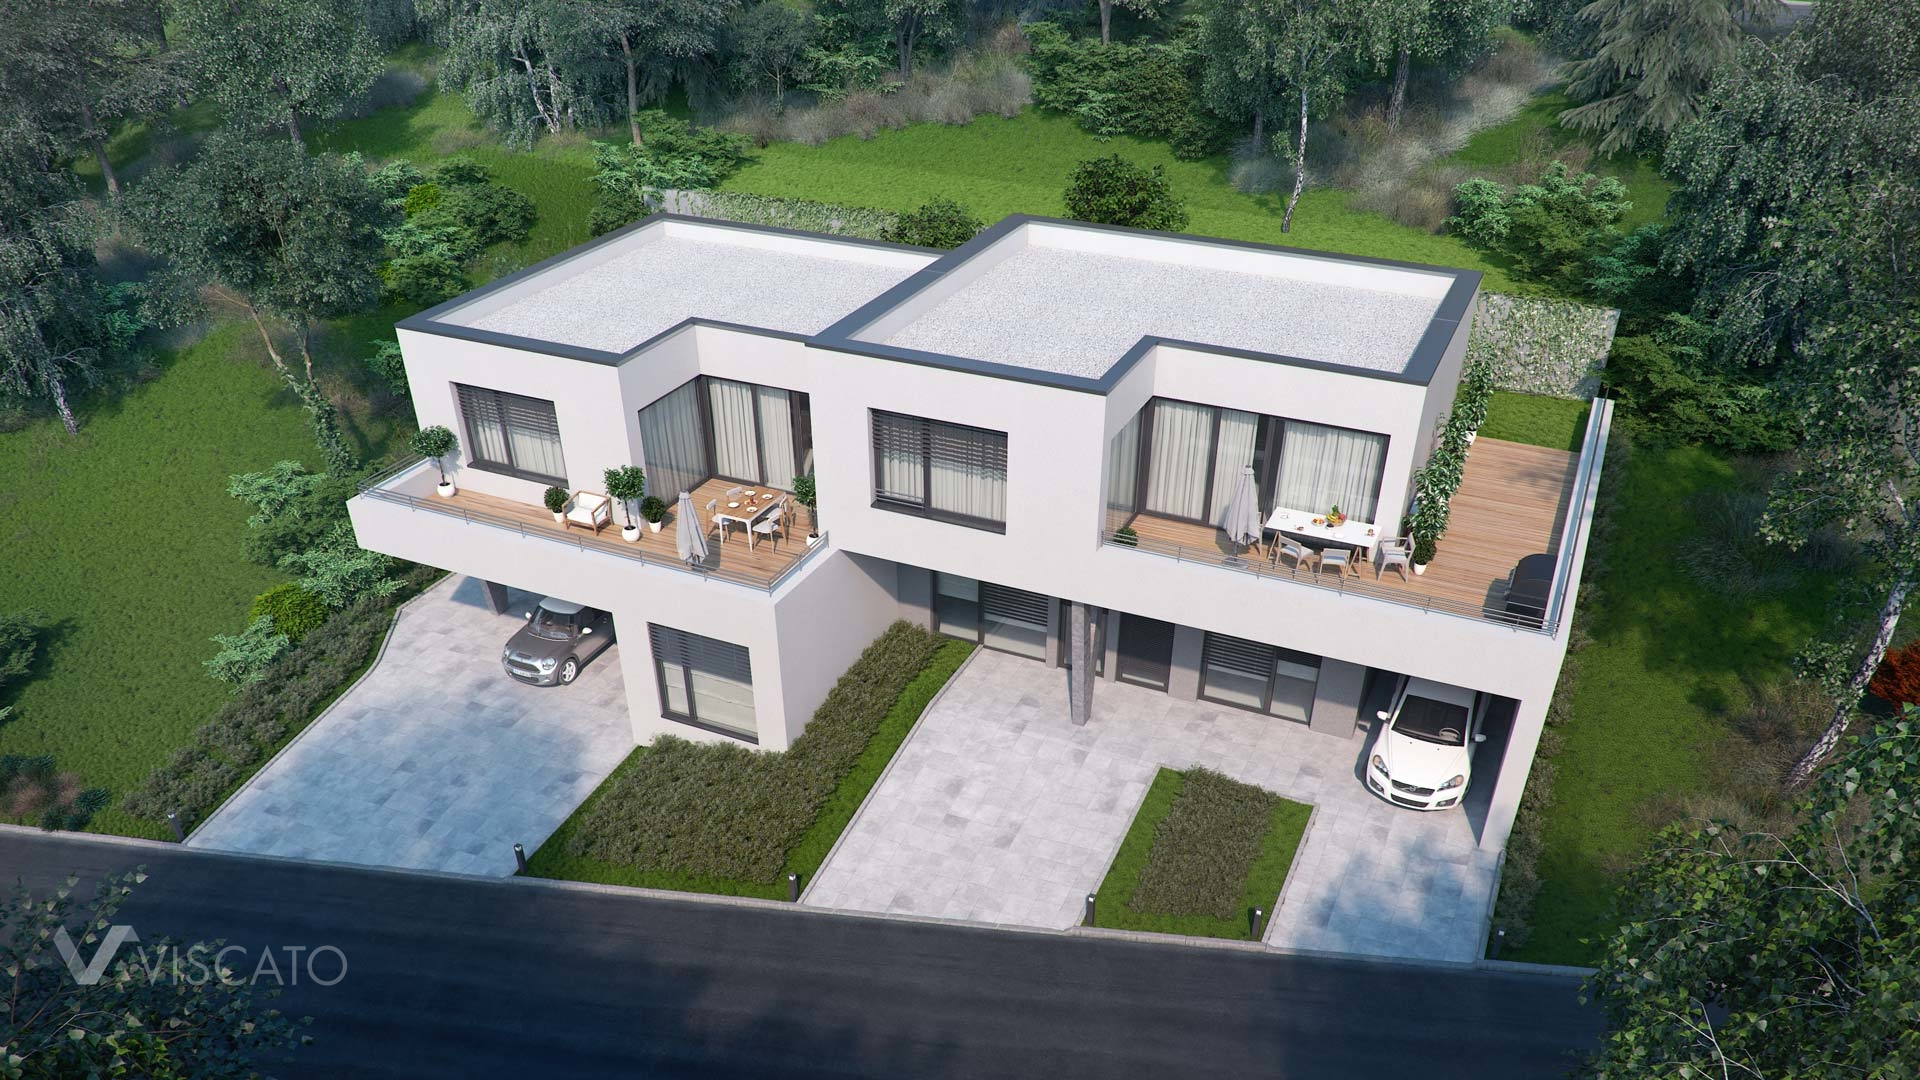 Visualization of duplex house in Walding, Austria, birds eye view